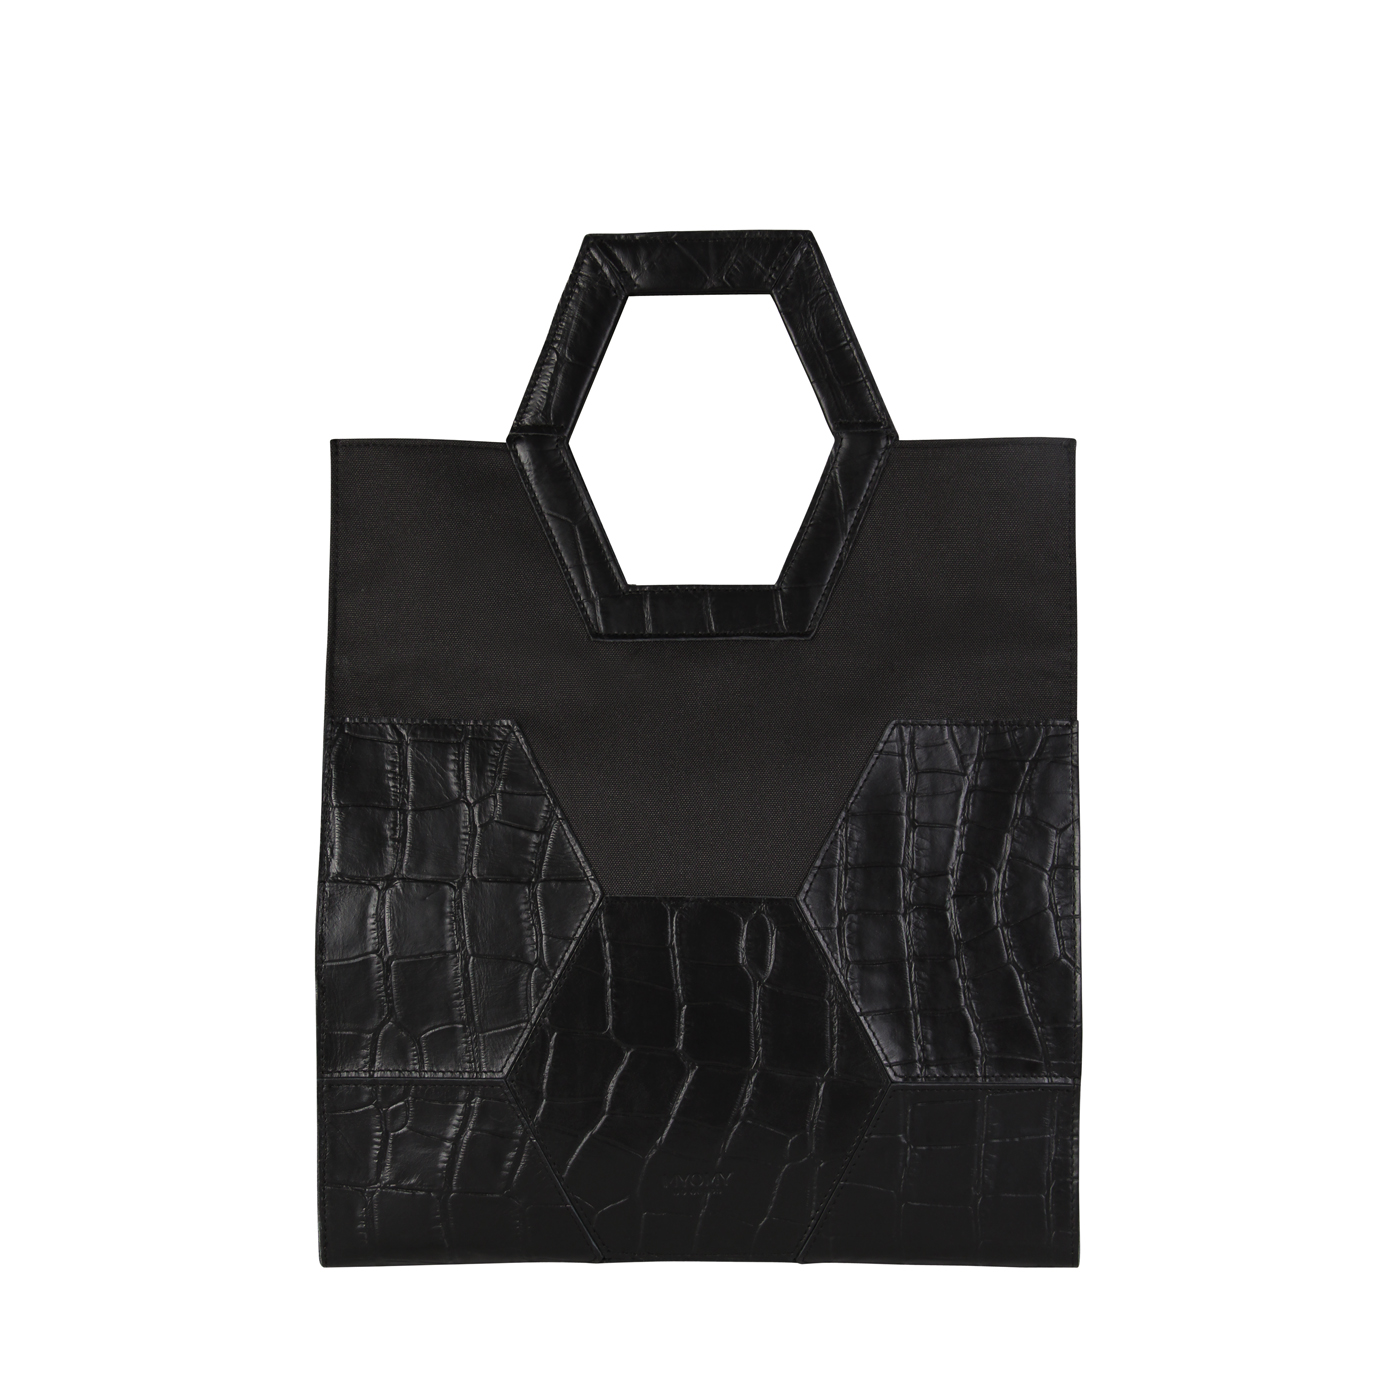 MY TREASURE BAG Shopper – croco black & recycled plastic